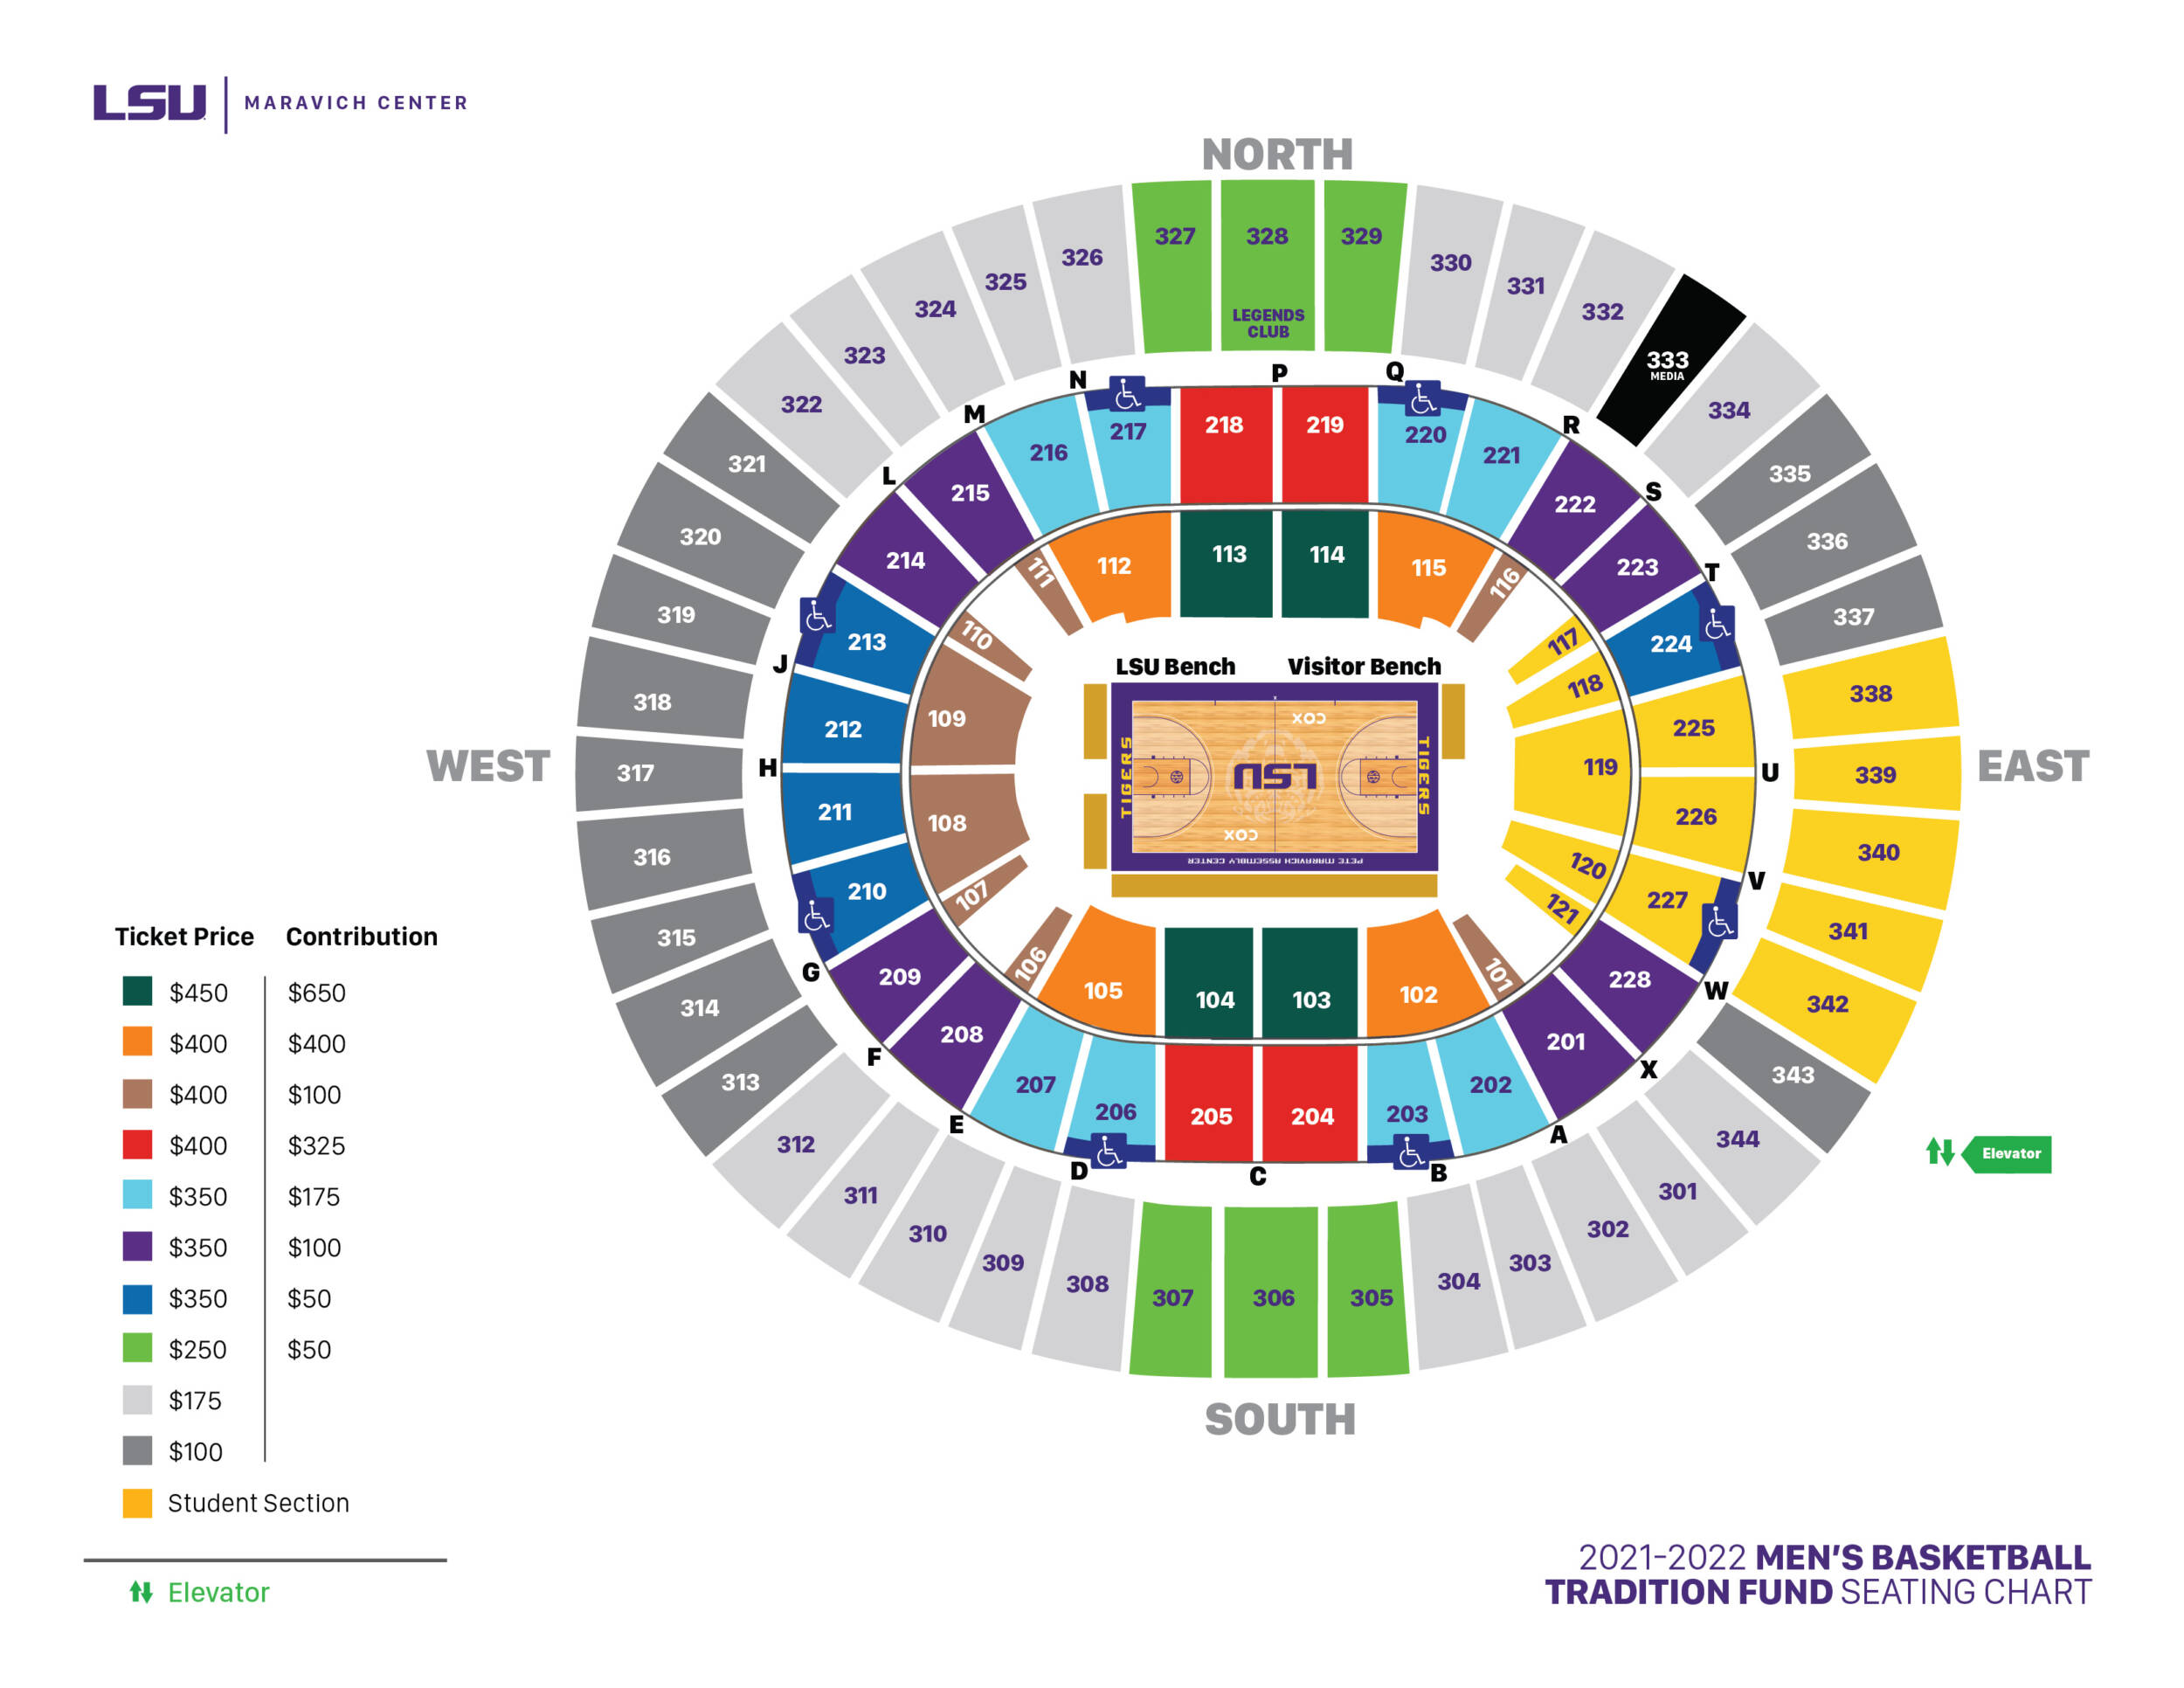 LSU Men's Basketball Tradition Fund Seating Chart - Maravich Center